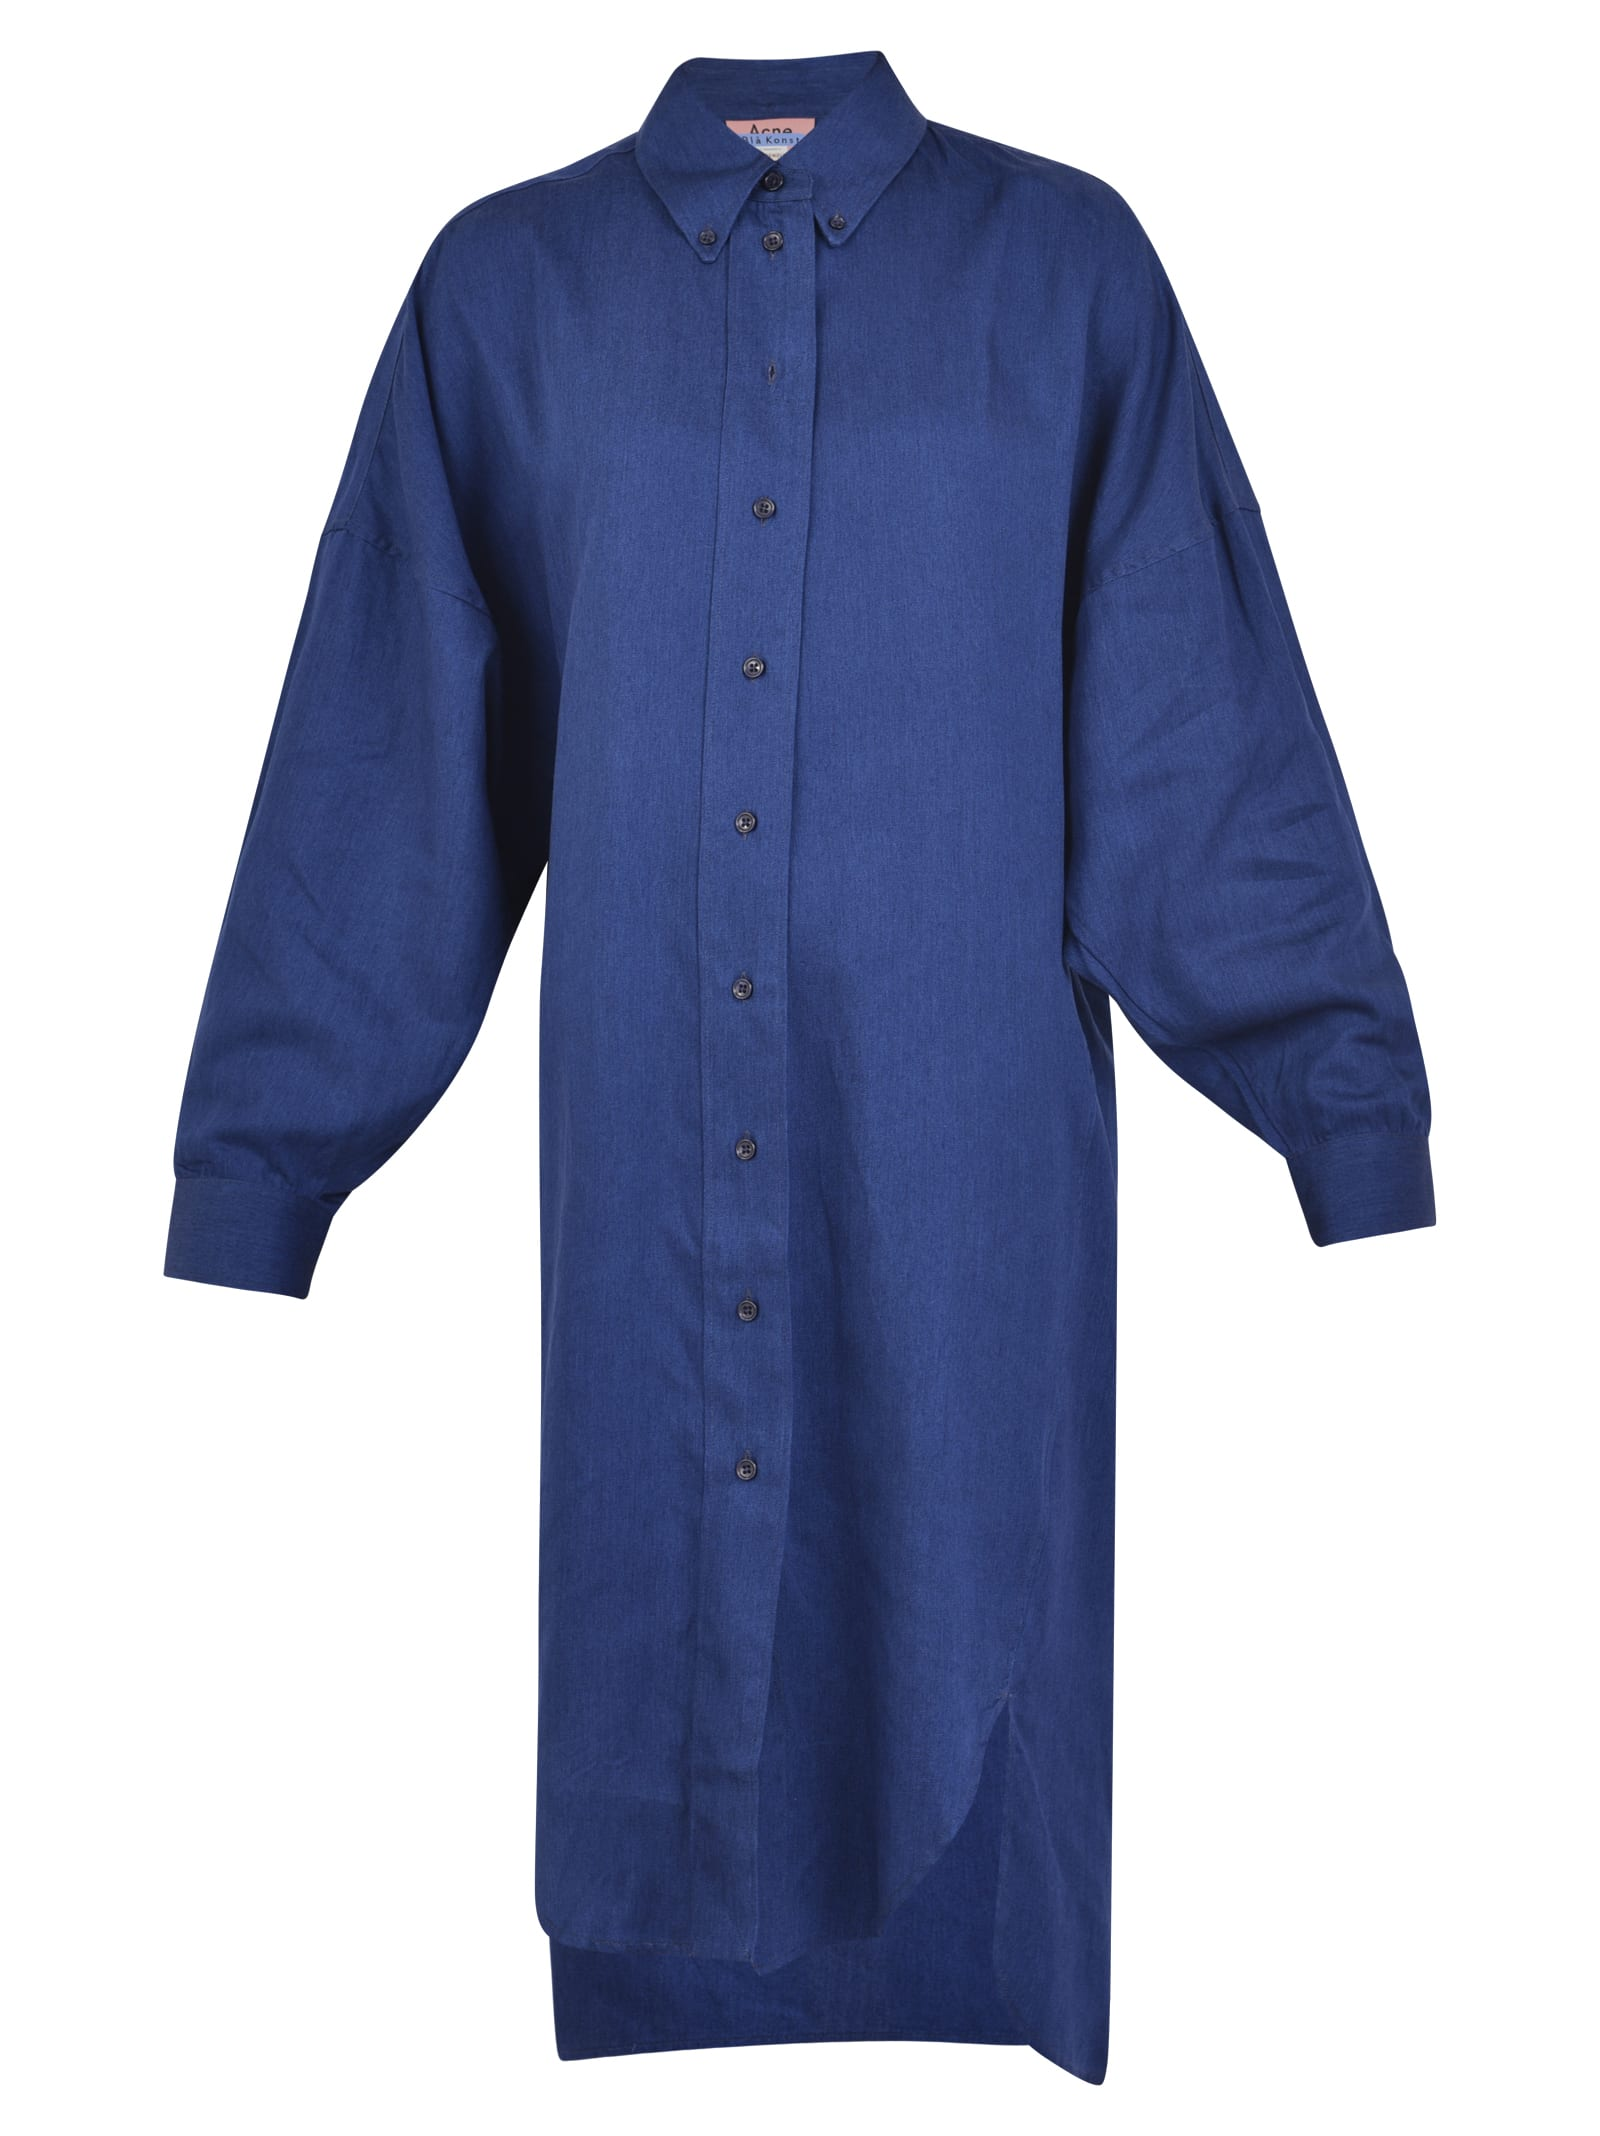 Acne Studios Shirt Dress